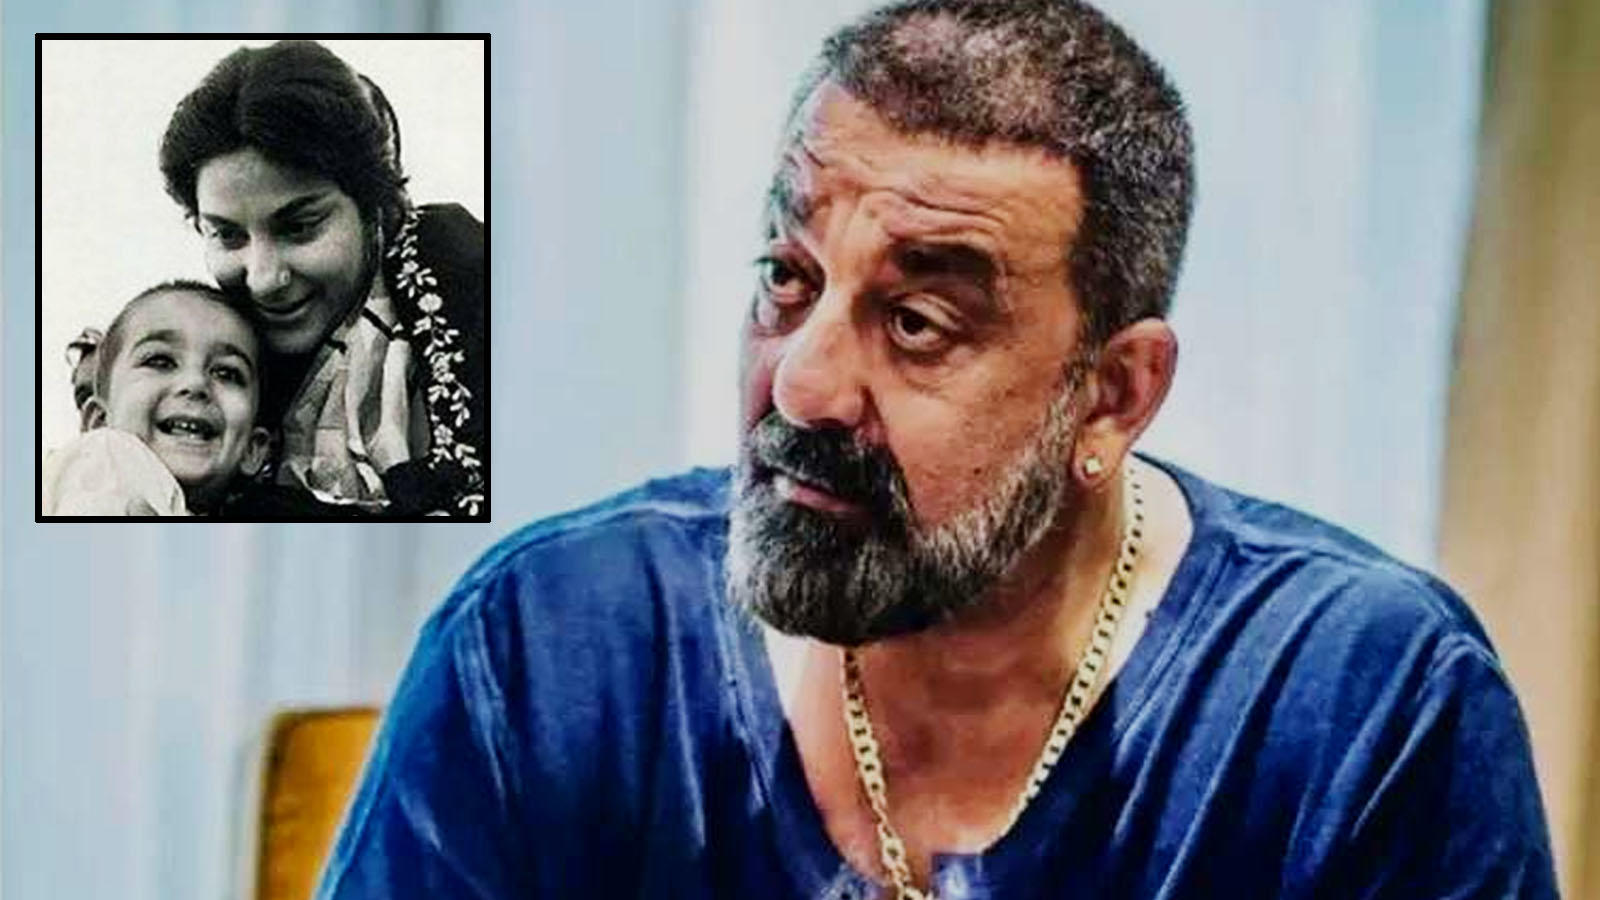 Sanjay Dutt pens an emotional post remembering mother Nargis Dutt on her death anniversary: 'Not a day goes by when I don't miss you ma' | Hindi Movie News – Bollywood – Times of India